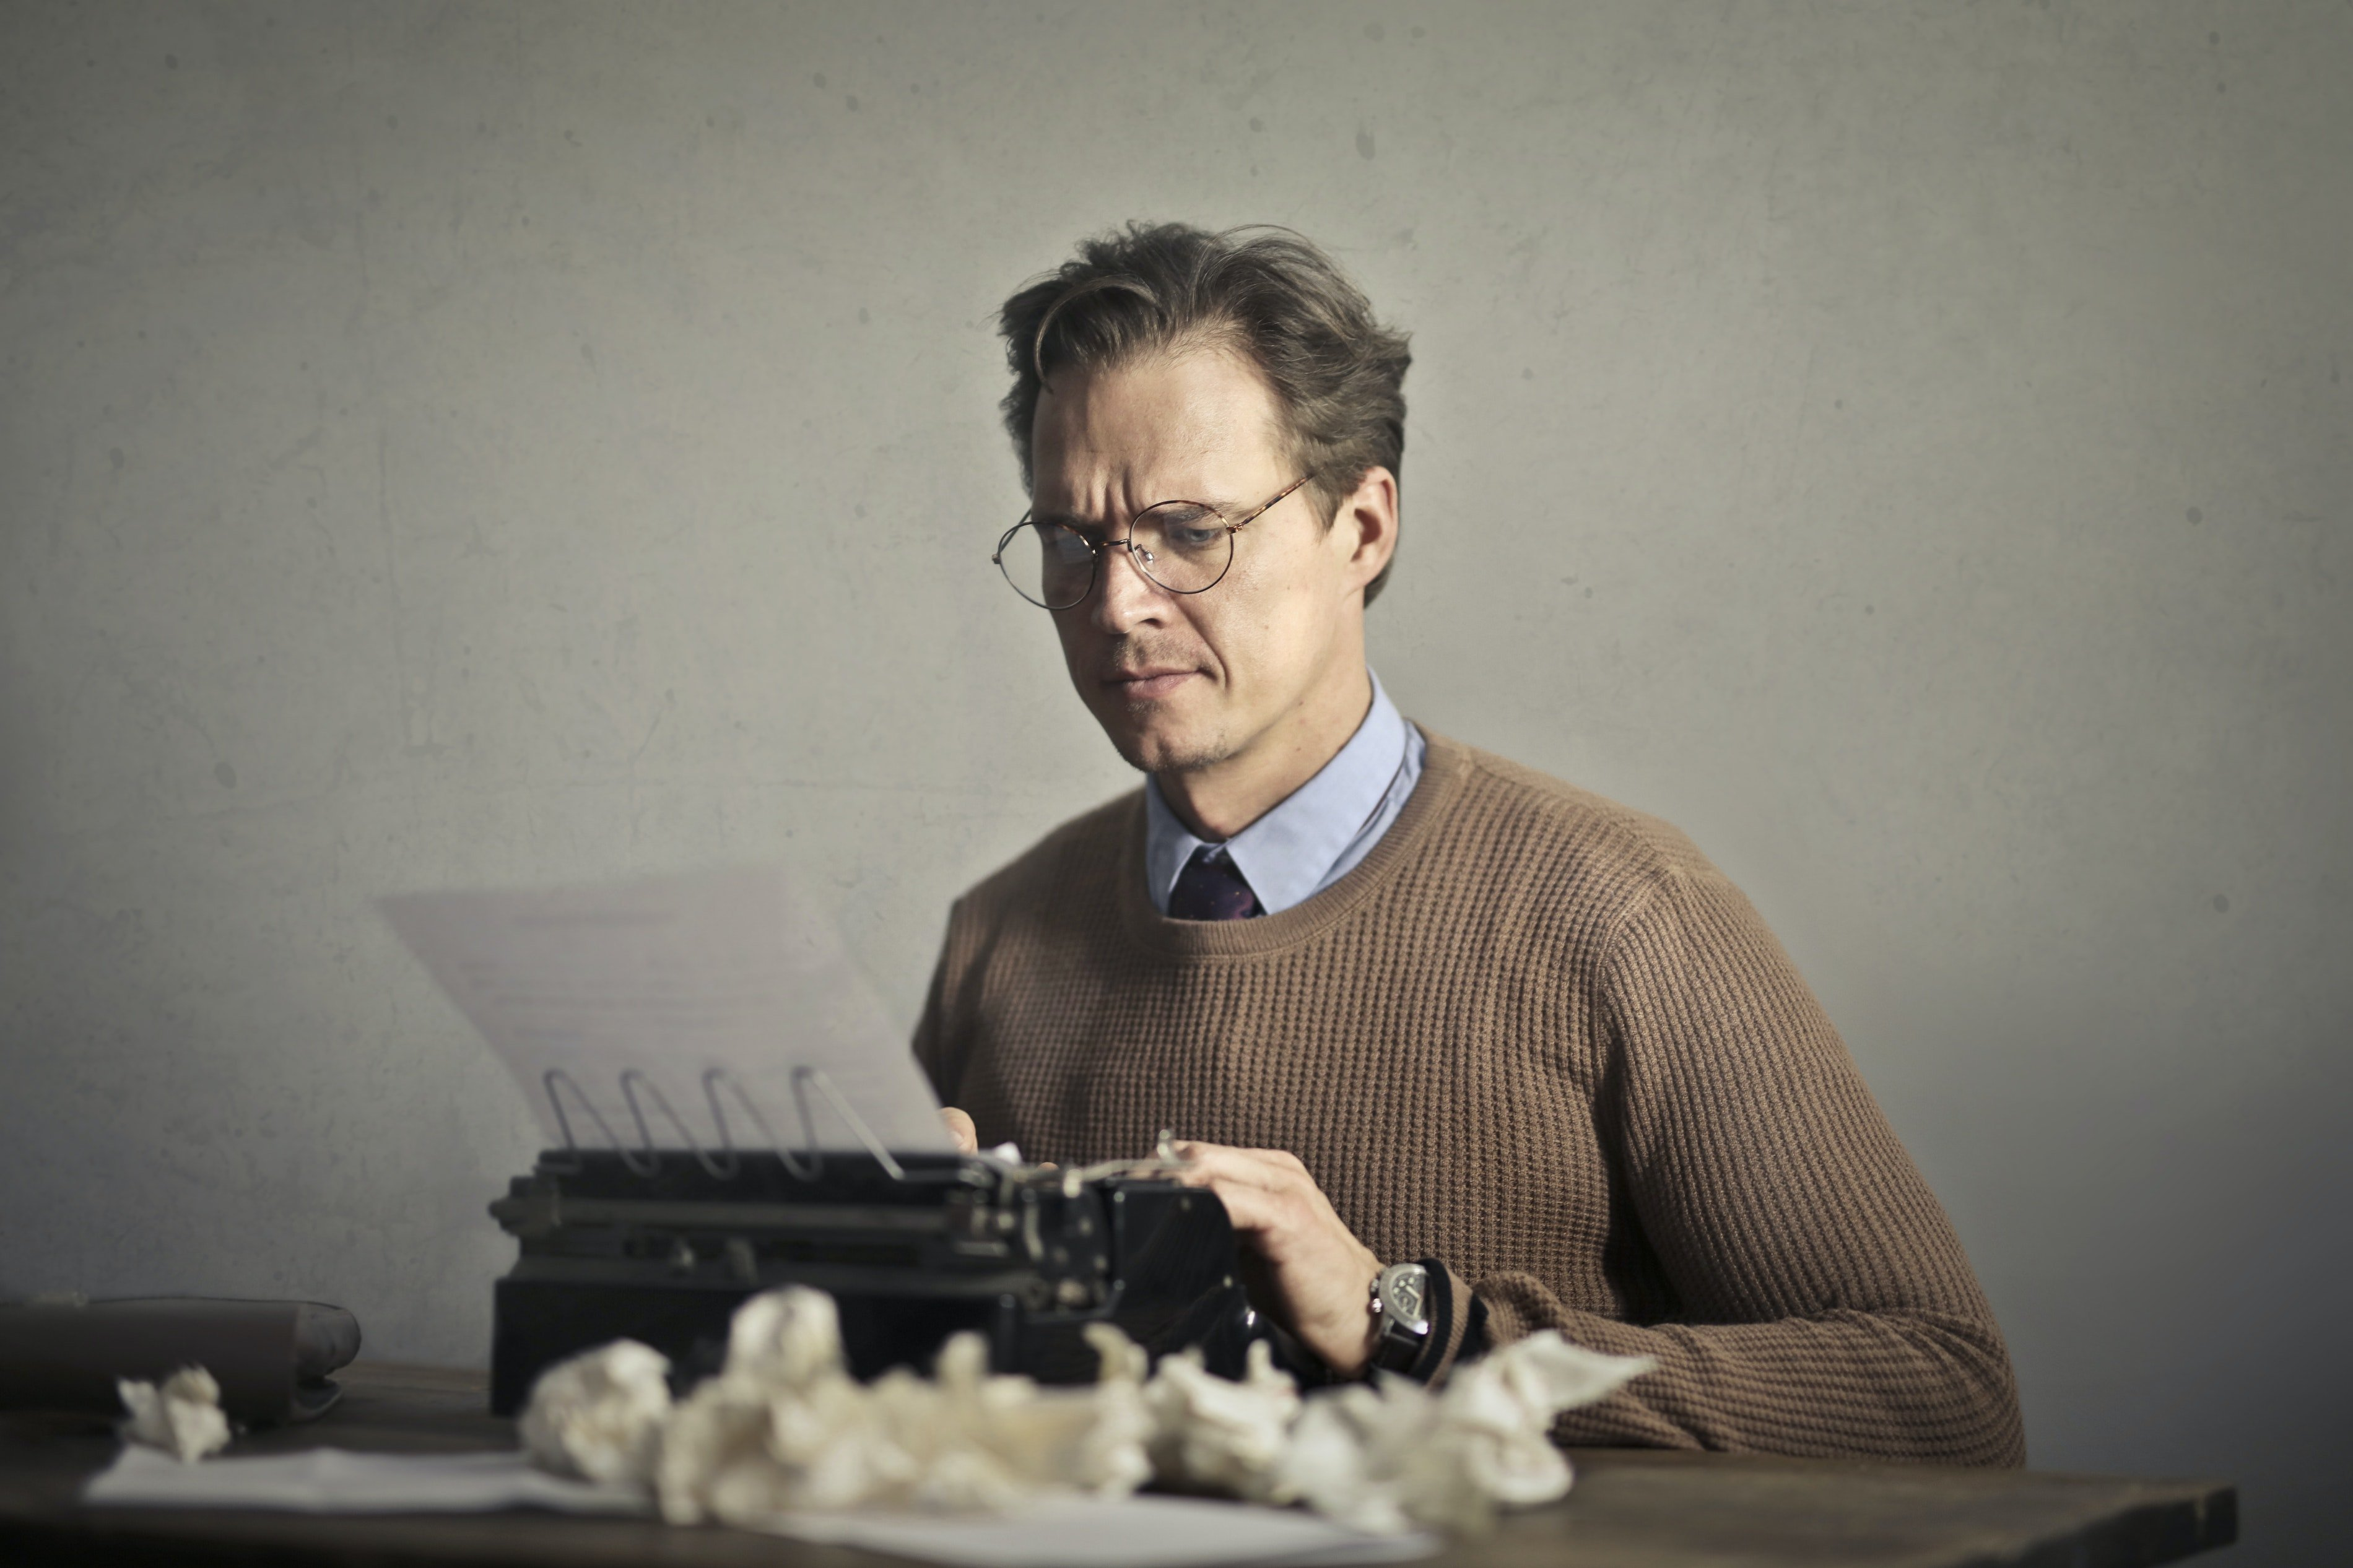 A picture to illustrate the thought of my mistakes as I'm writing this   Source: Pexels